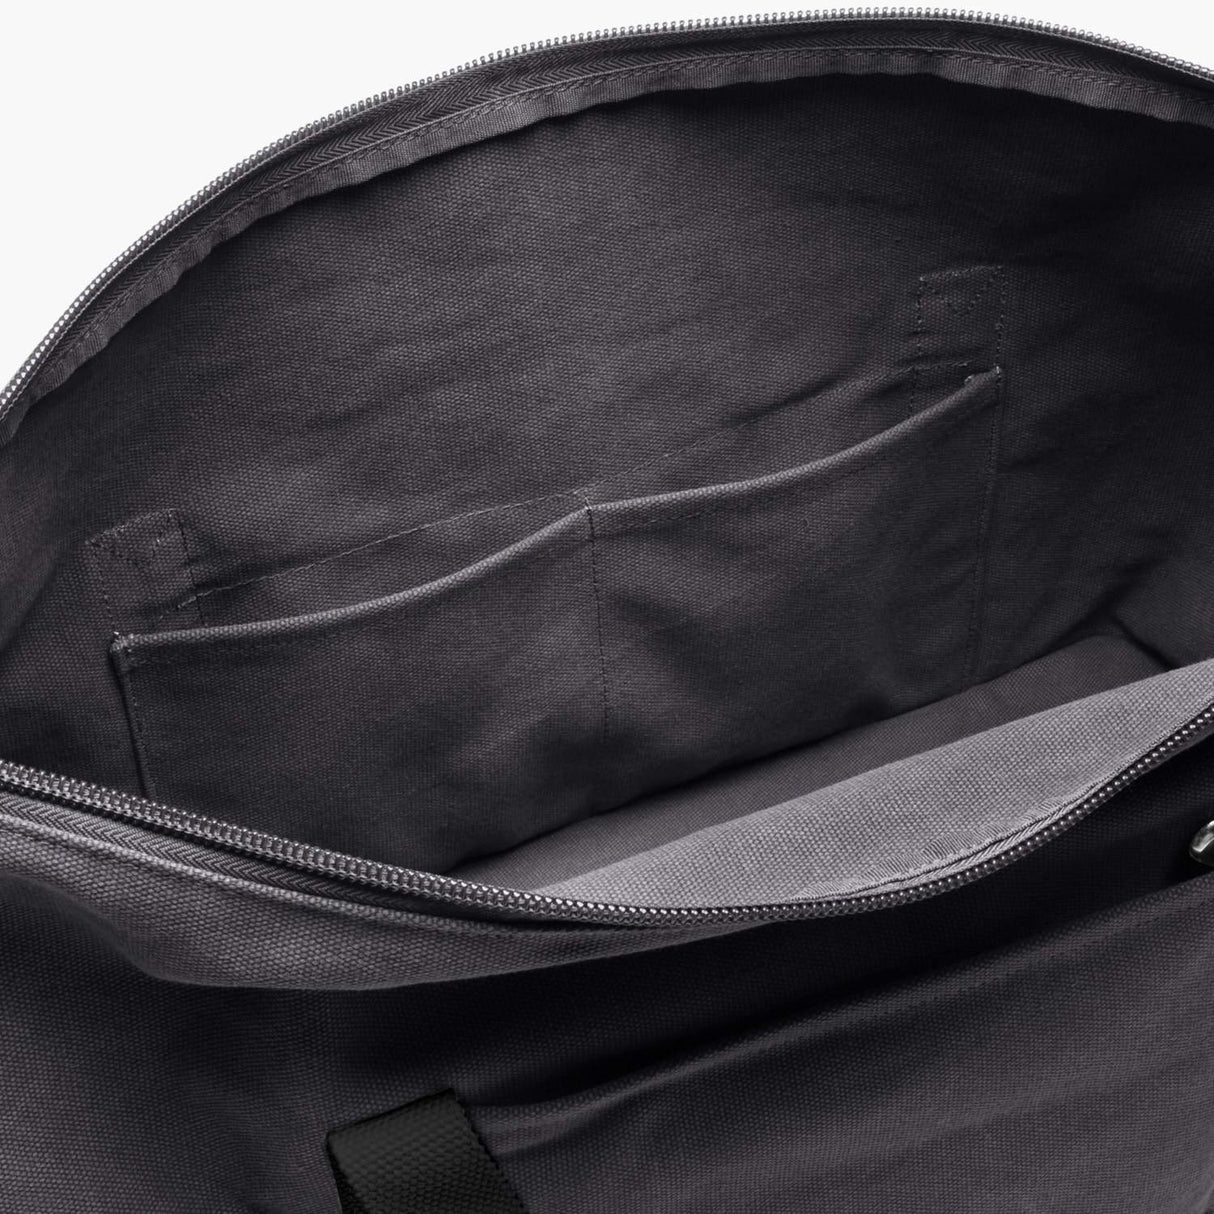 Interior Pockets - The Catalina Deluxe - Washed Canvas - Midnight Ash - Weekender - Lo & Sons